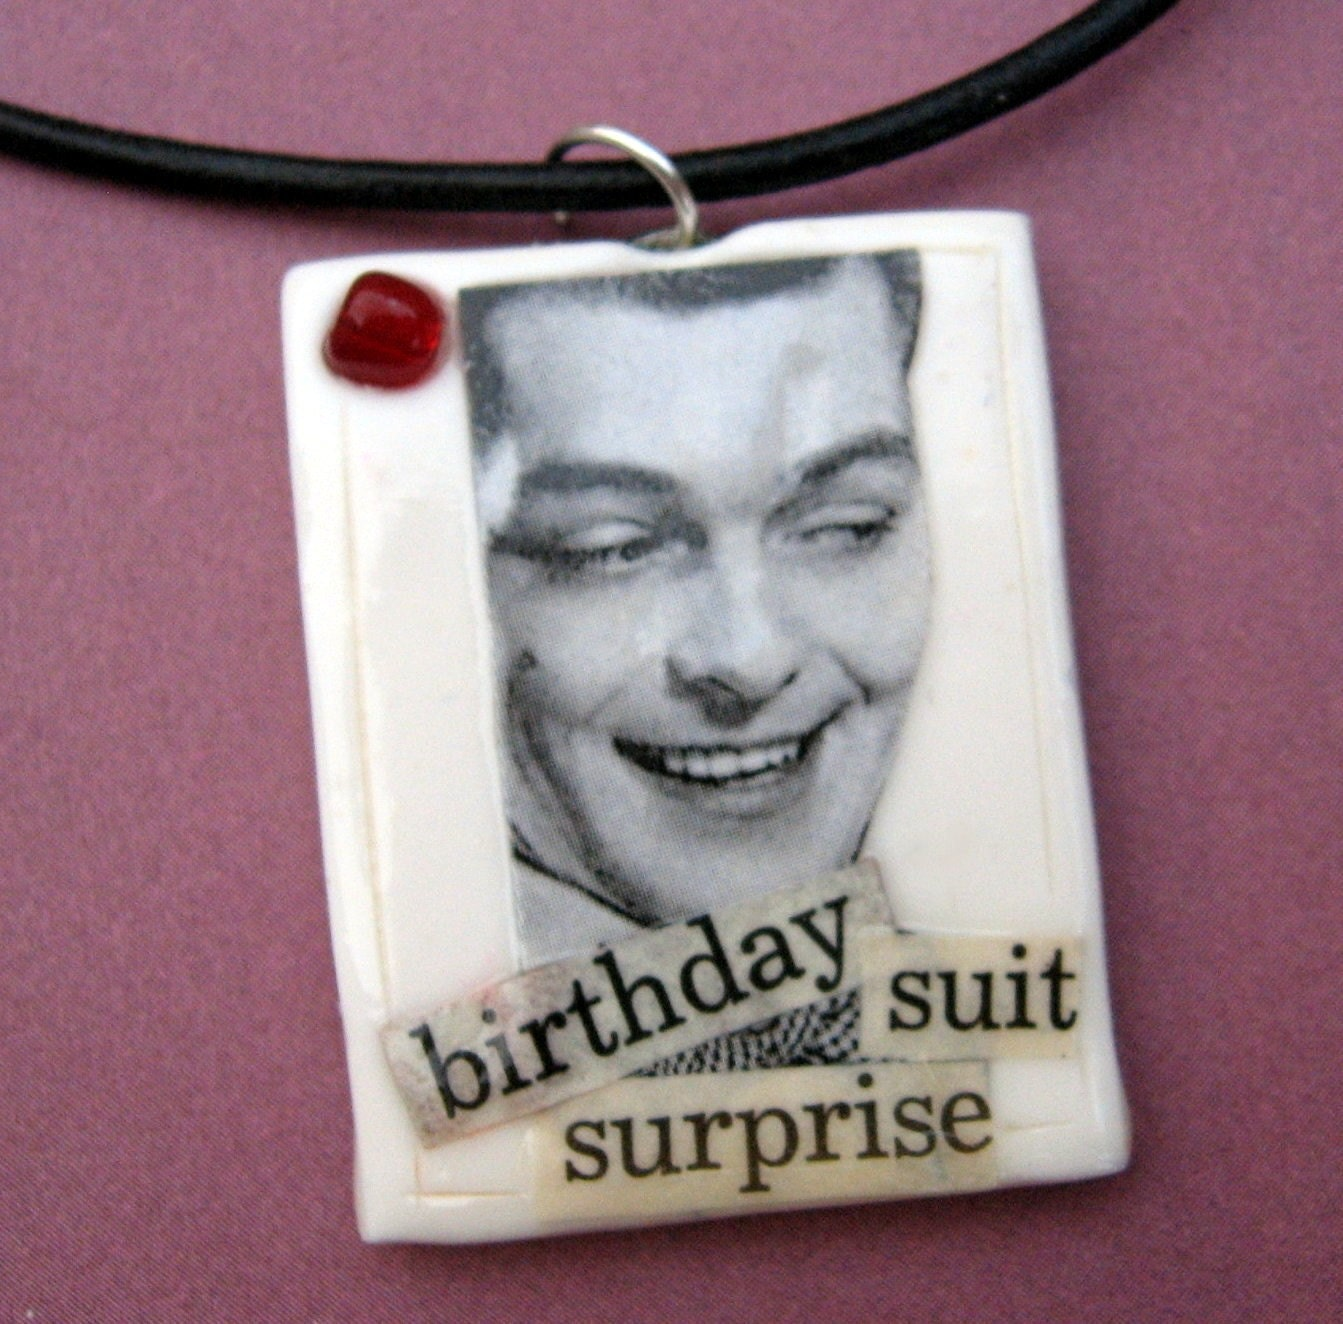 Birthday Suit Surprise pendant (on leather cord)